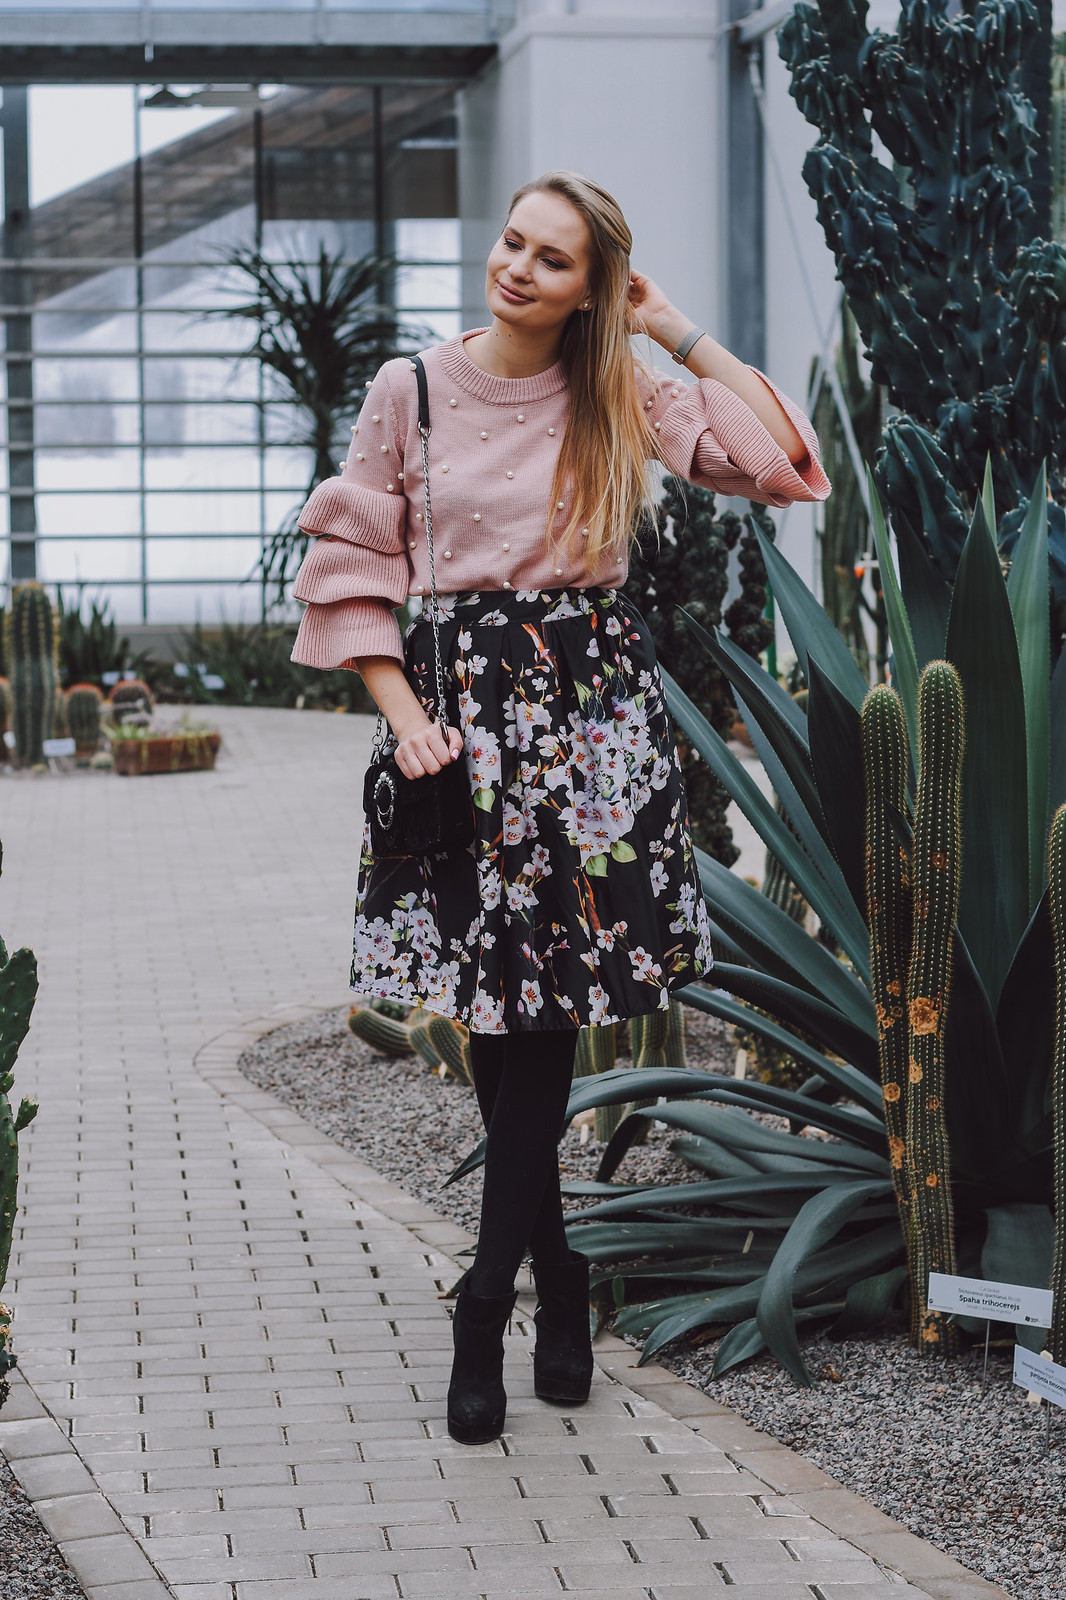 European fashion blogger